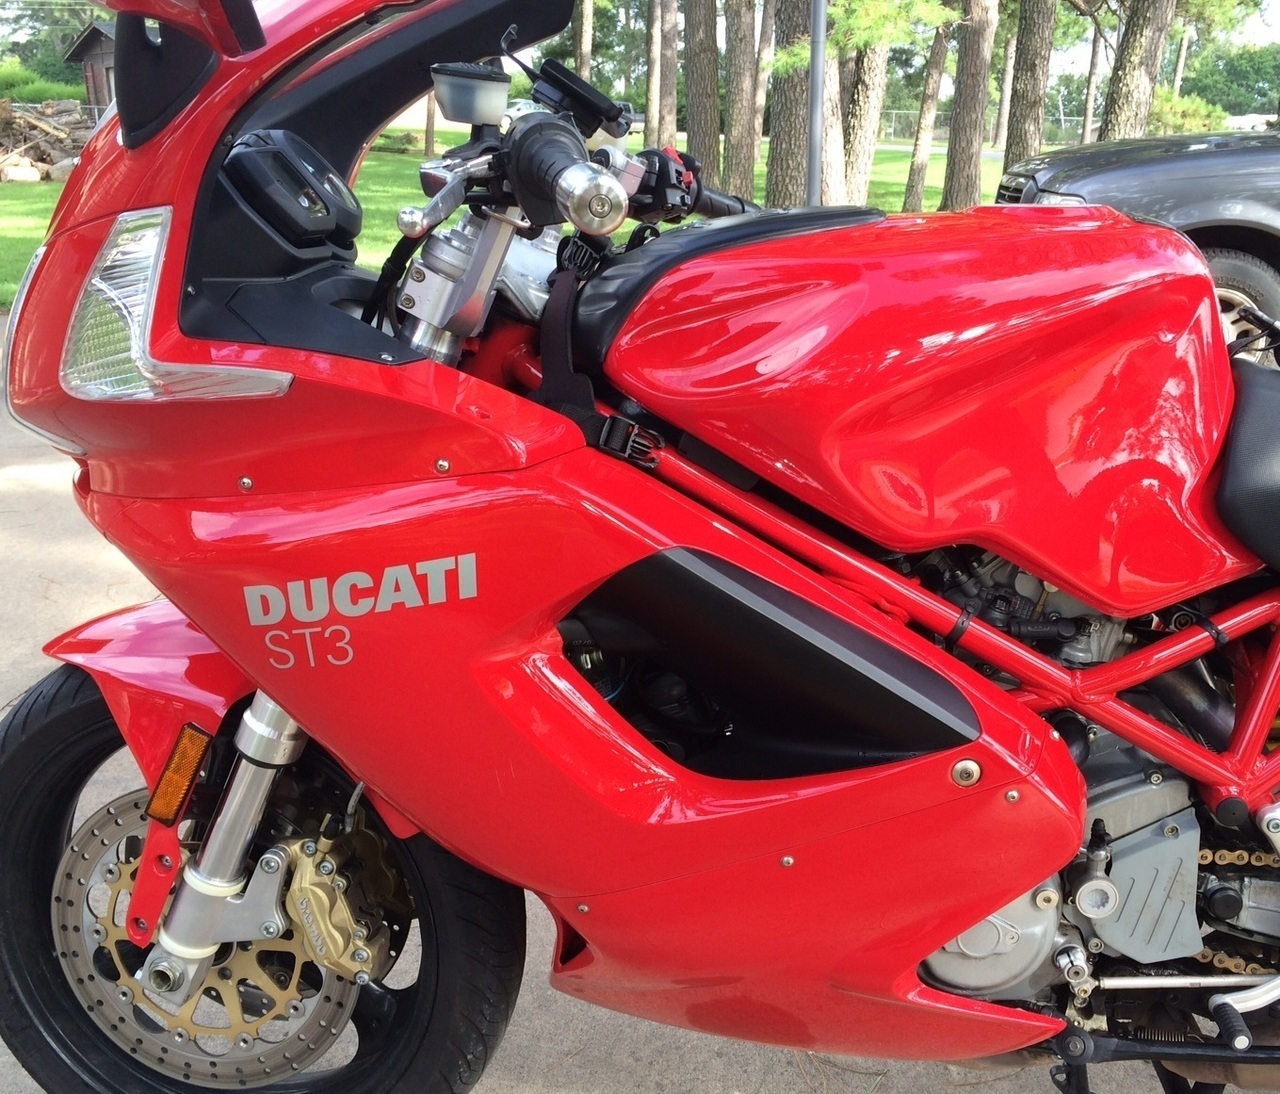 2006 Ducati St 3, motorcycle listing